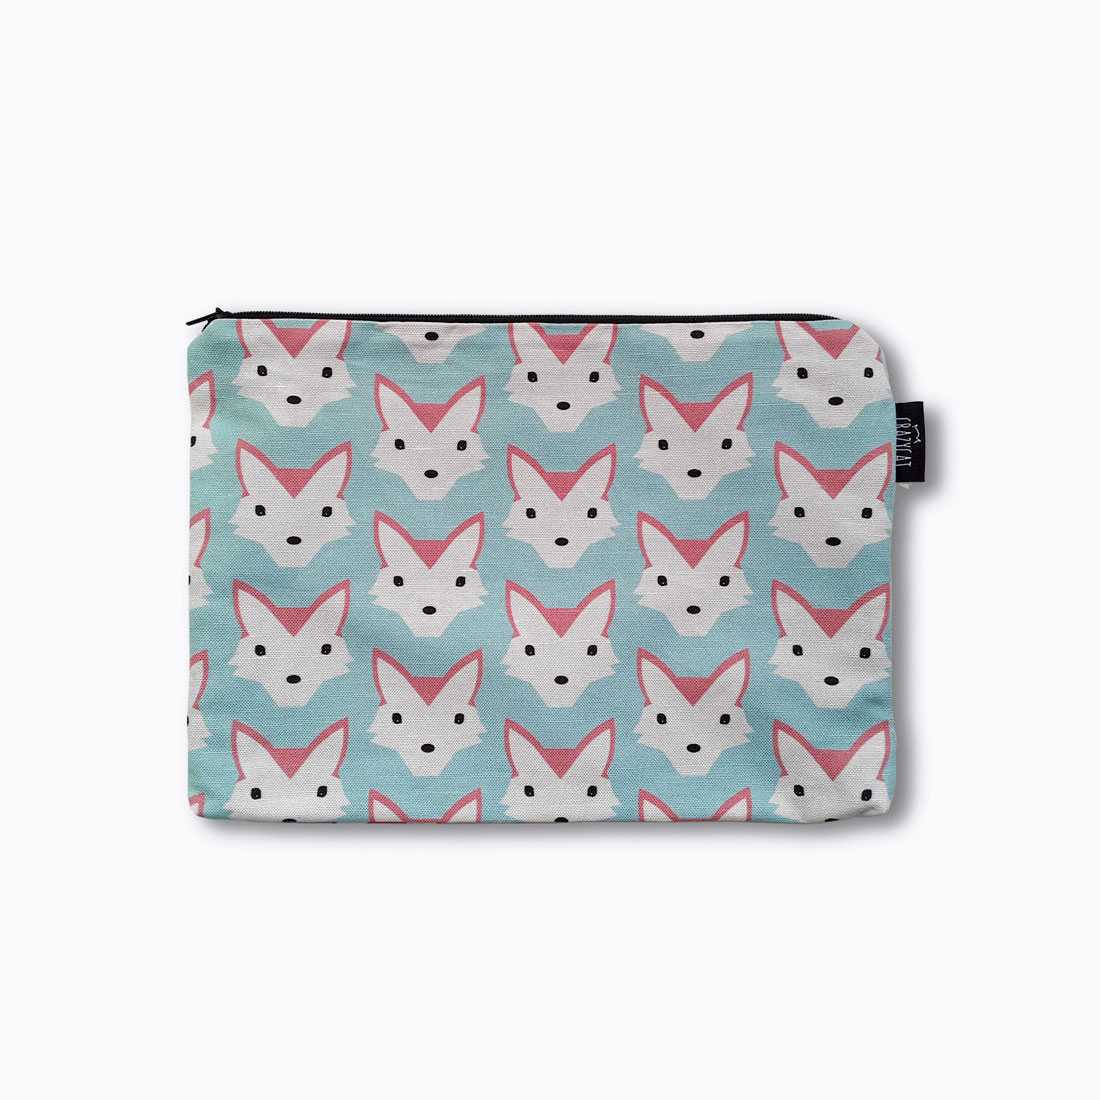 Foxes maxi Pouch Crazycat